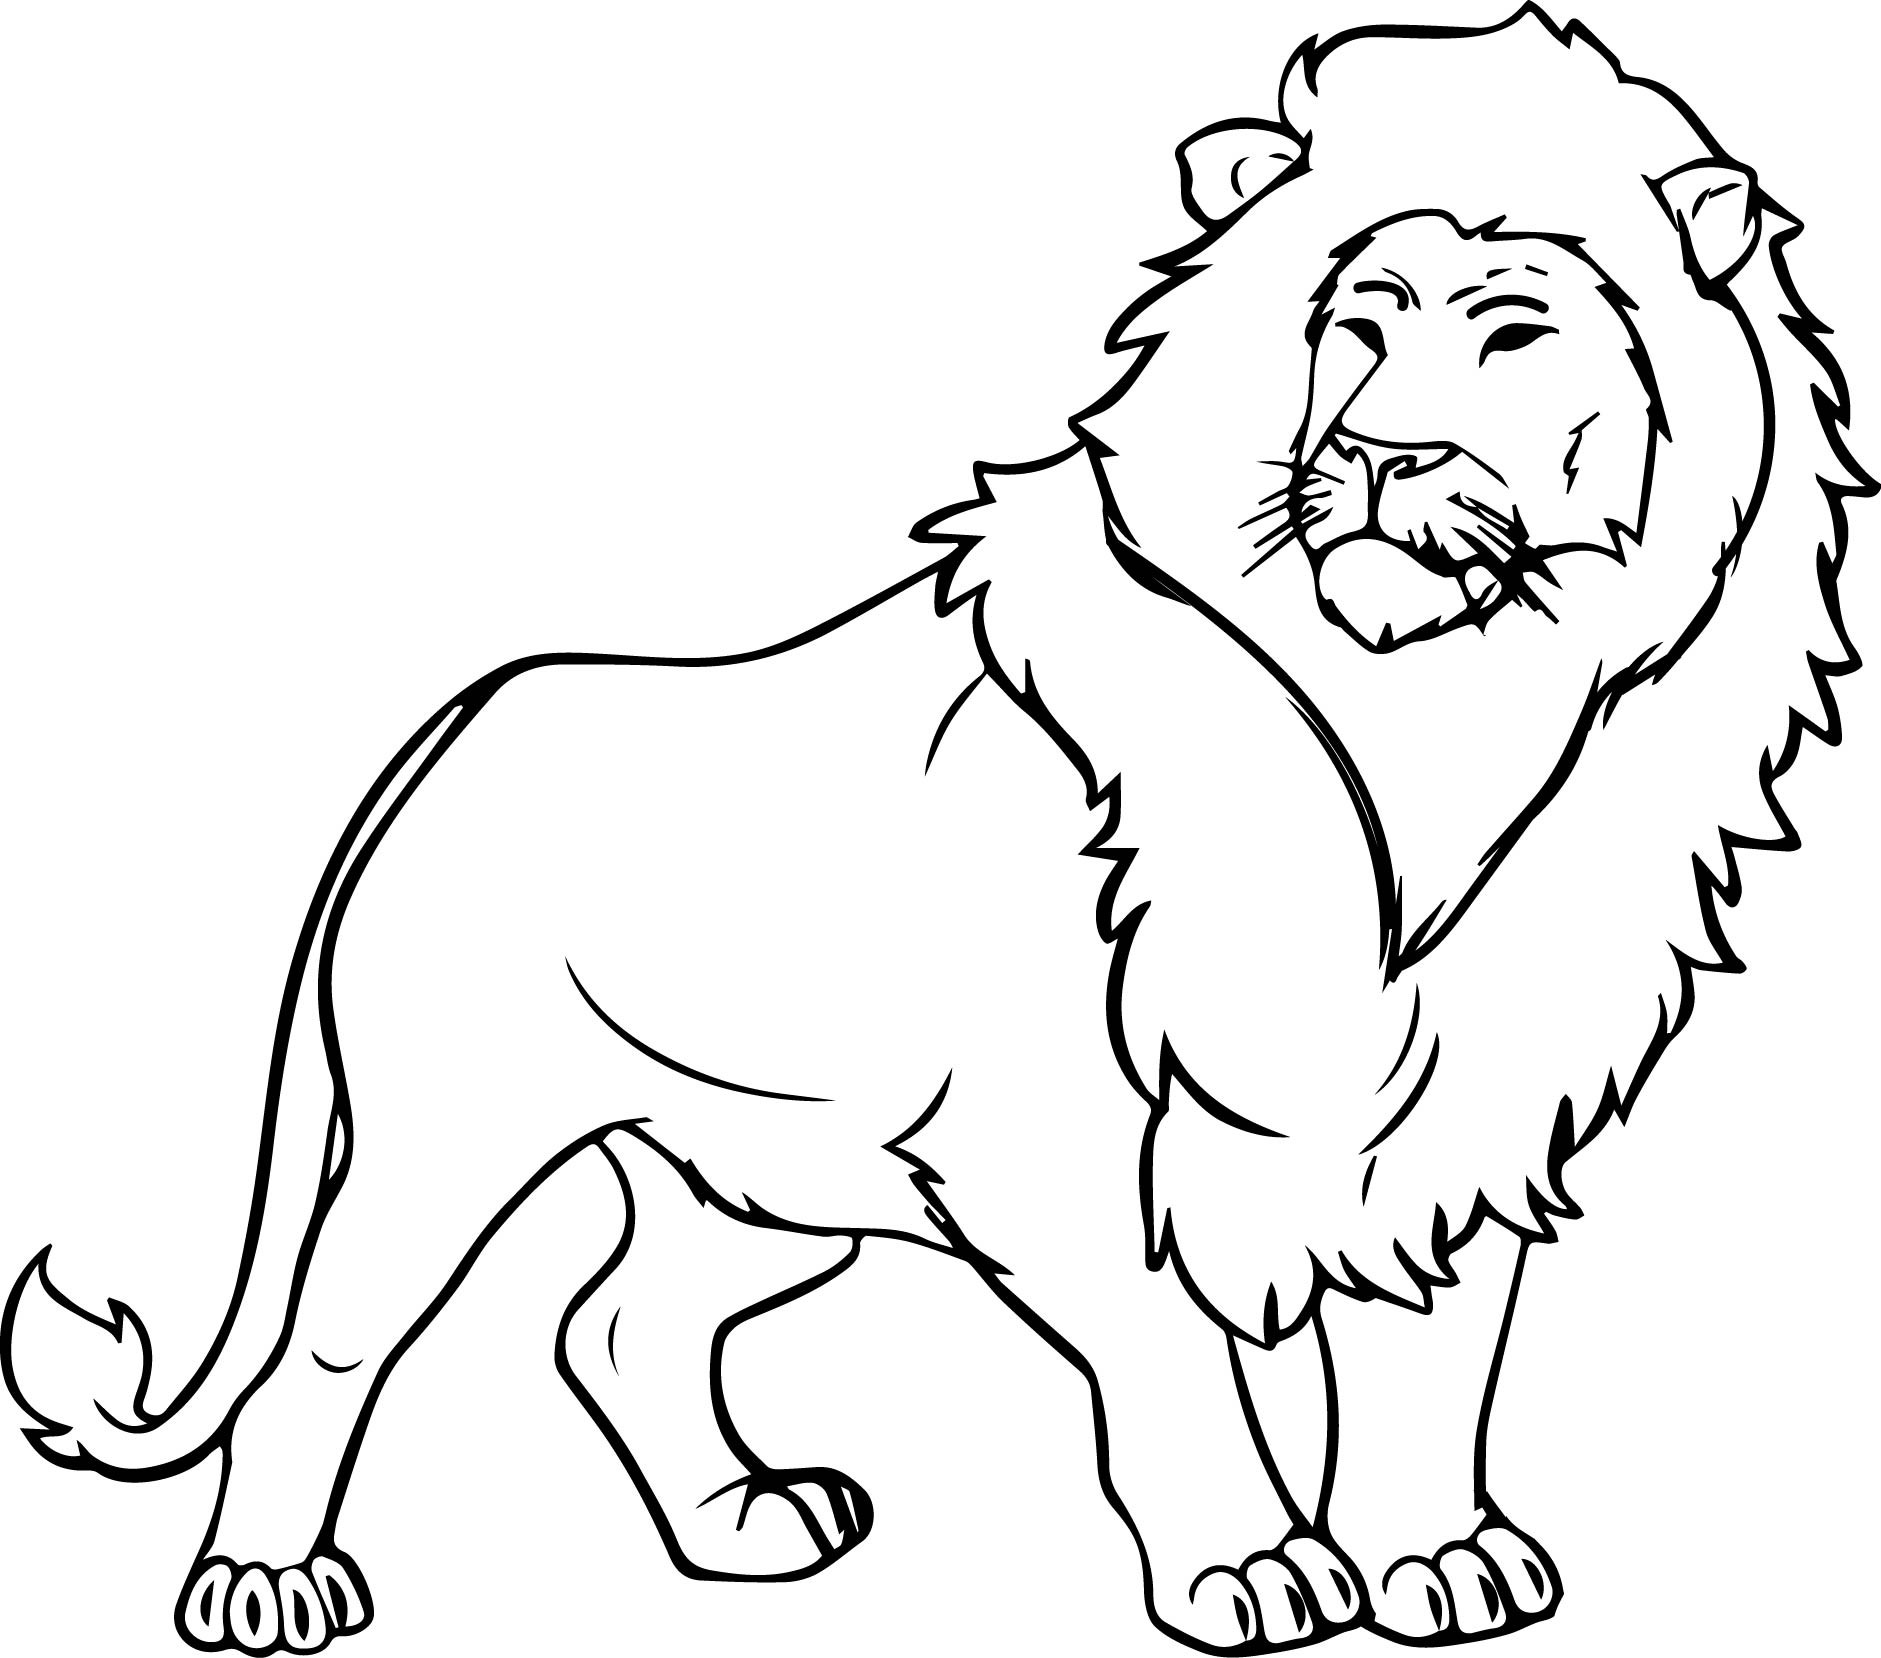 coloring lion pages lion free to color for children lion kids coloring pages lion coloring pages